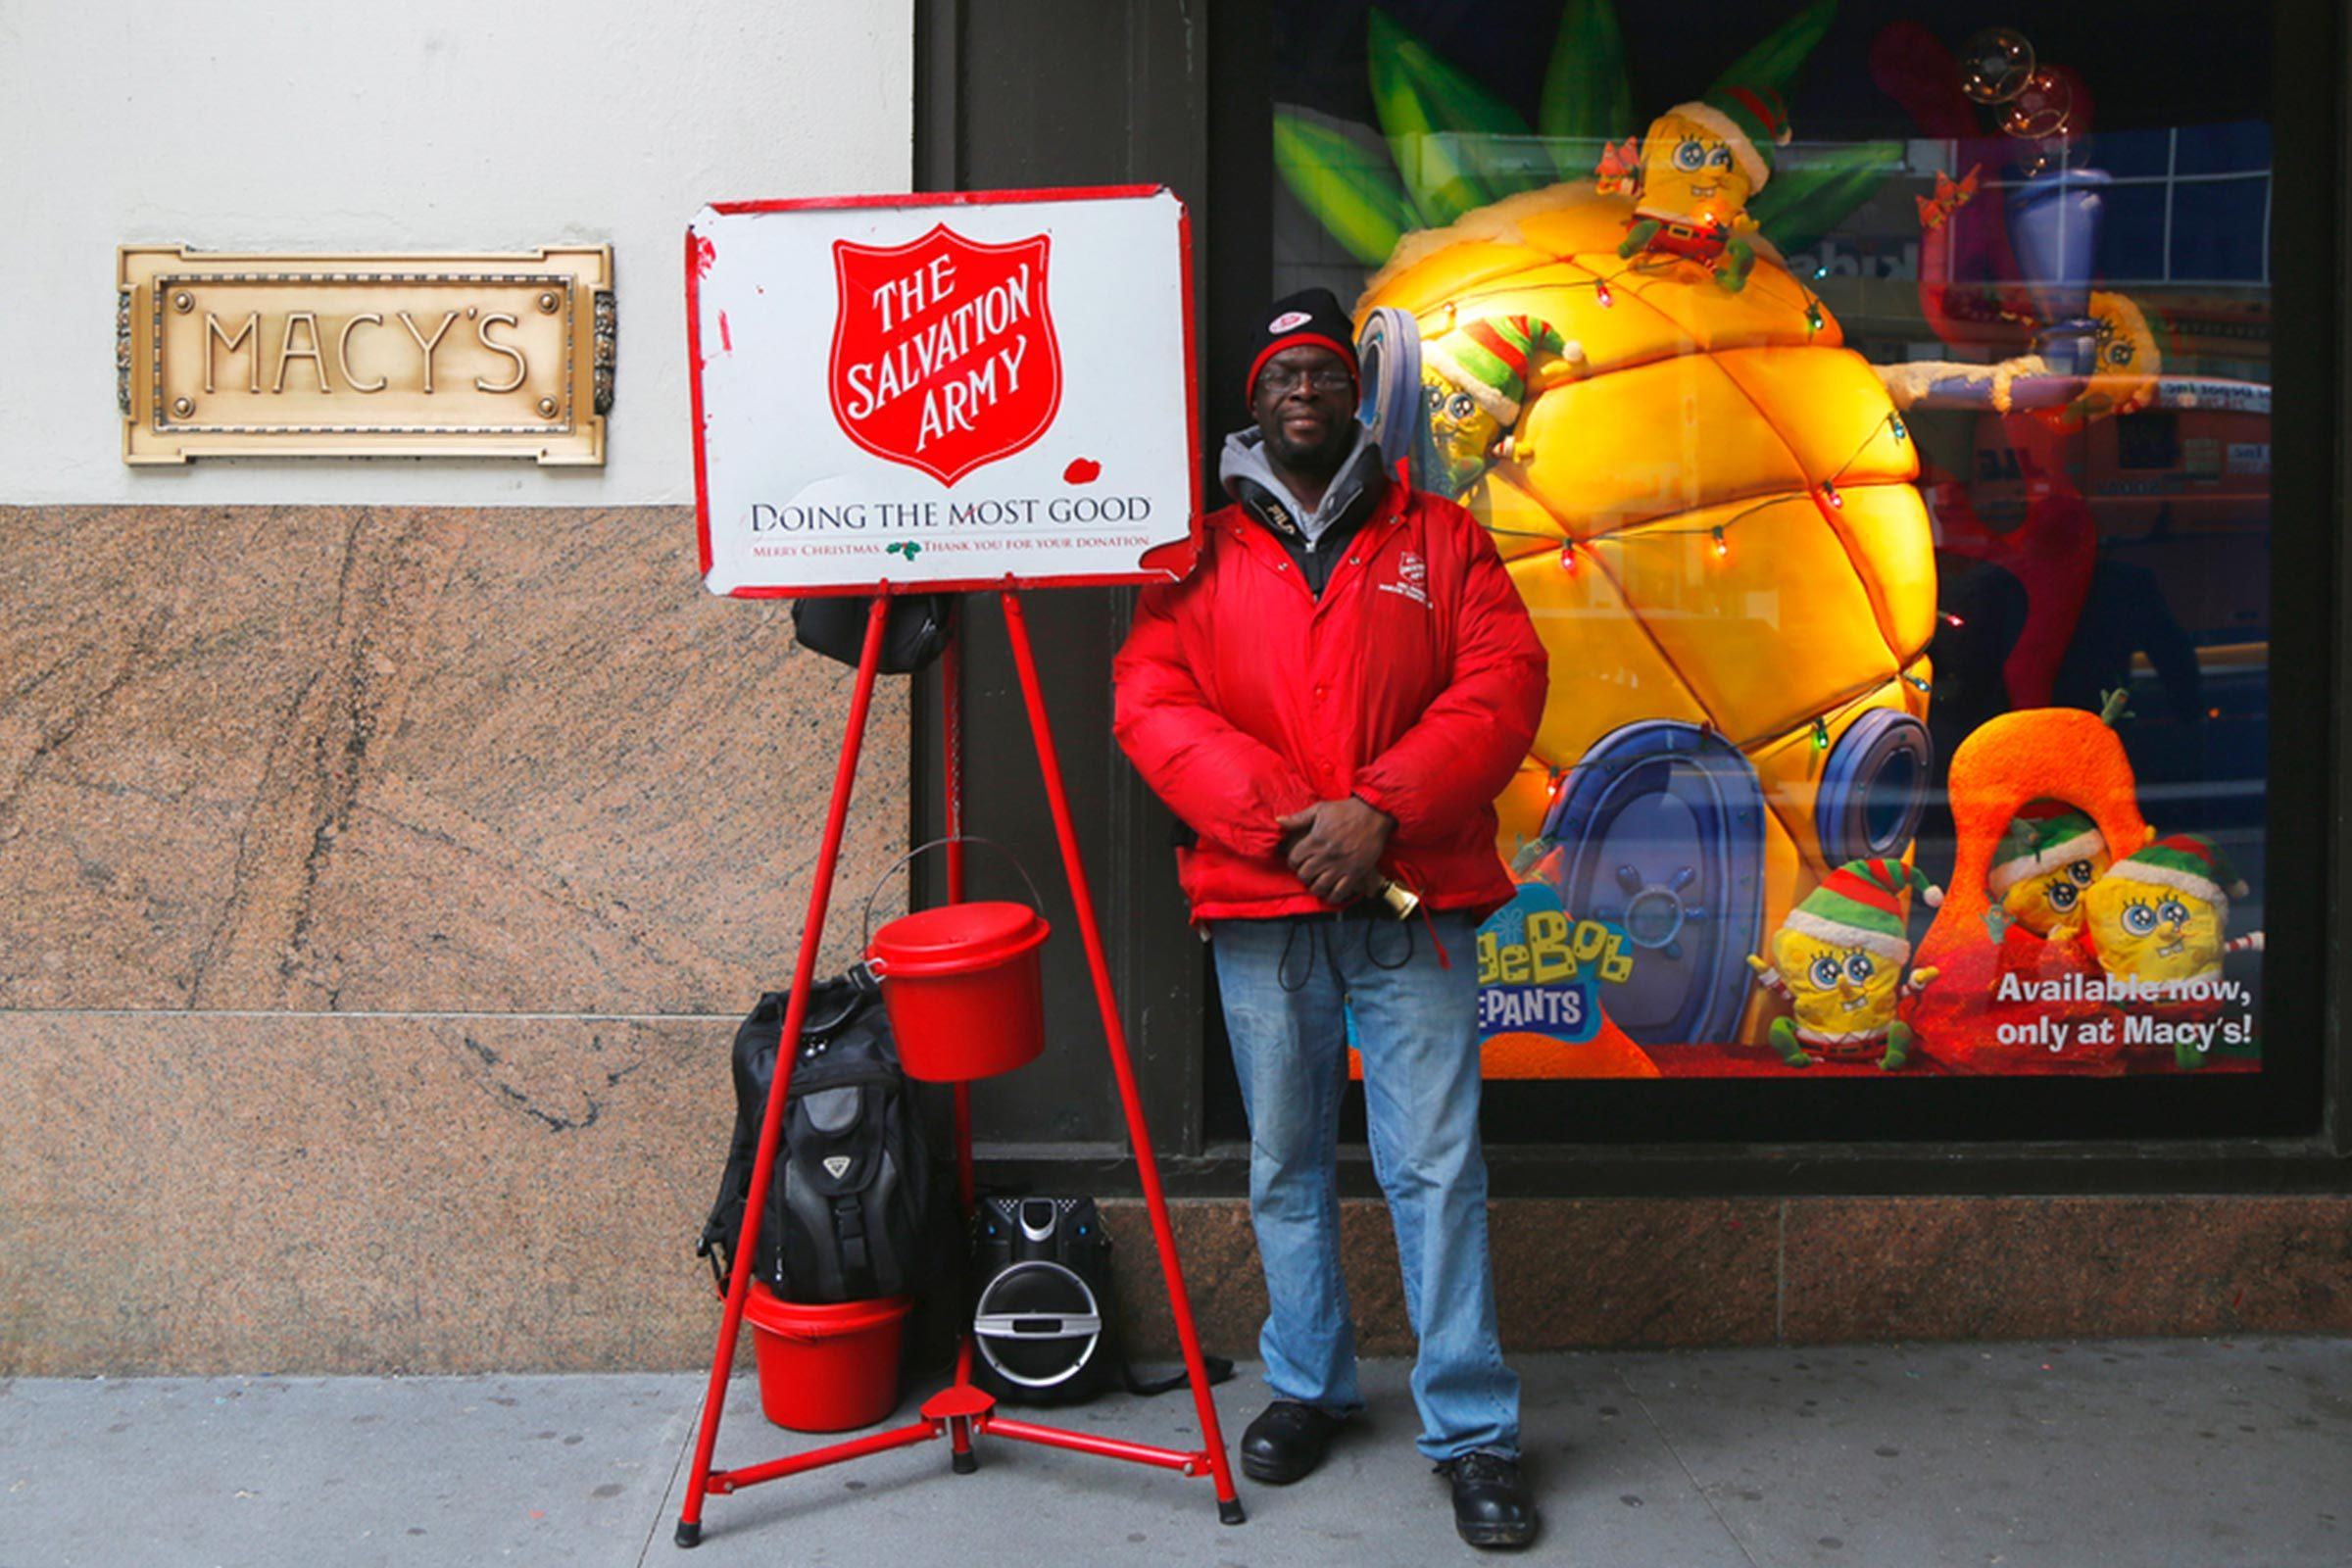 Salvation army red bucket